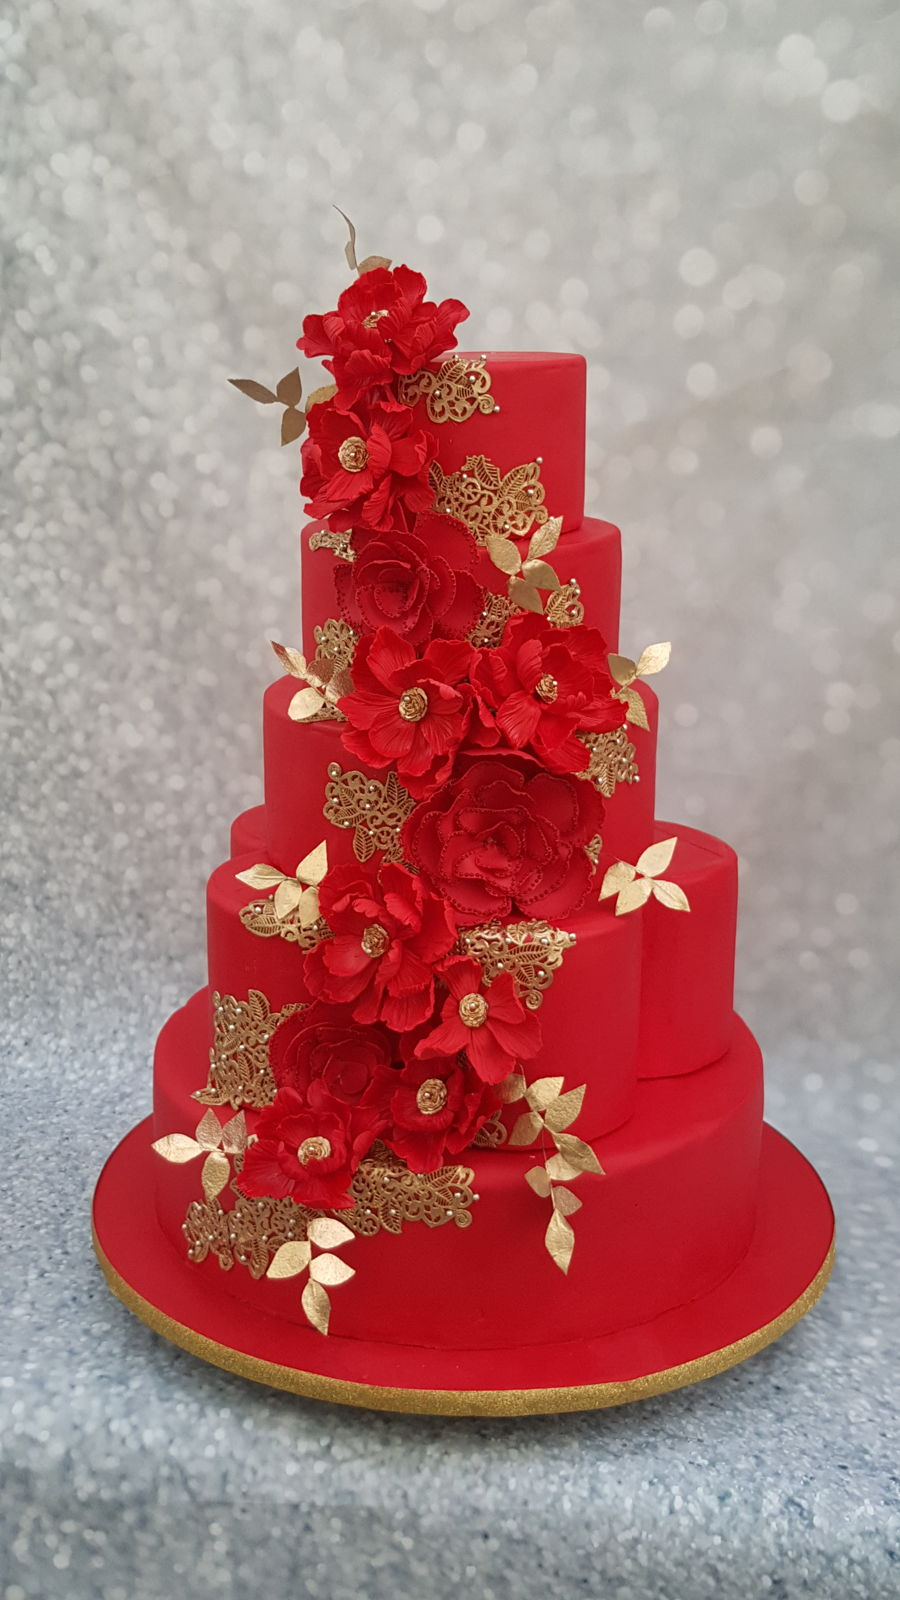 The Red Wedding Cake Cakecentral Com